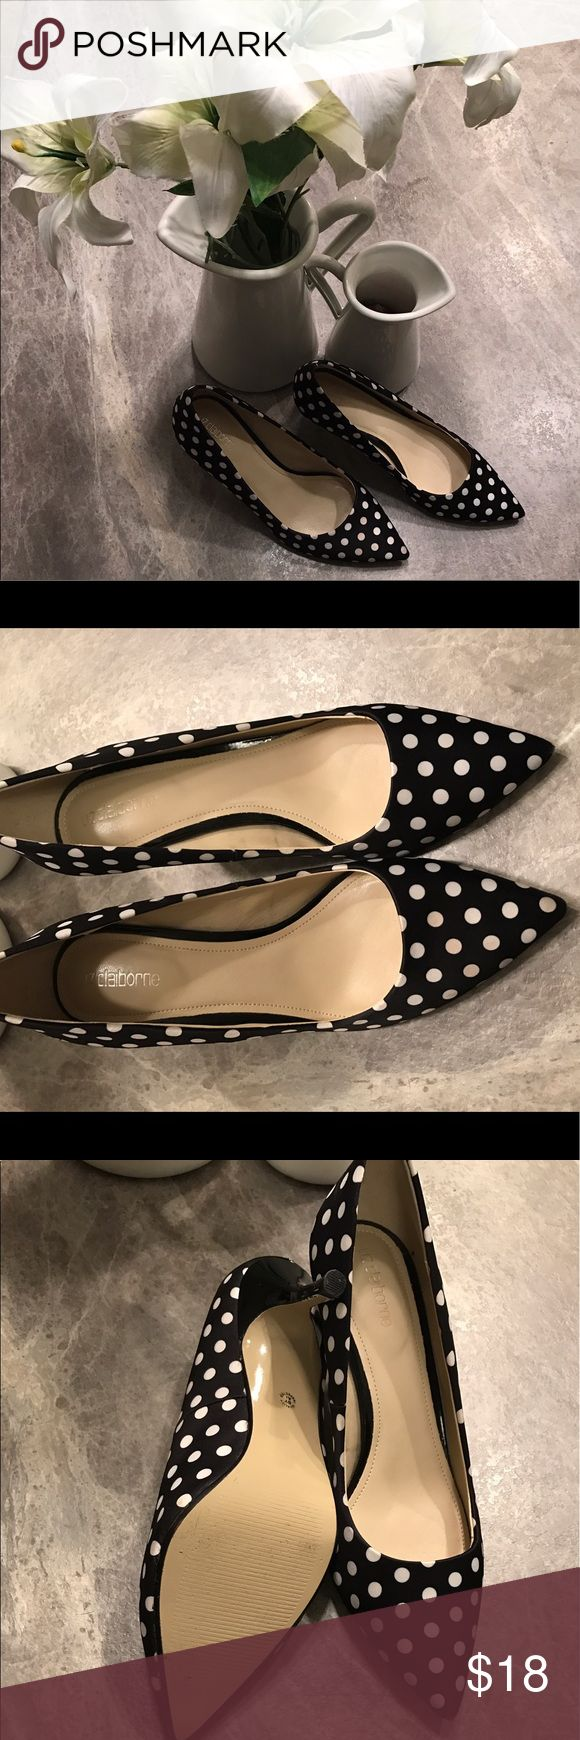 Liz Claiborne polka dot kitten heels Black and white polka dot pumps. Super comfy and perfect fit. EUC Liz Claiborne Shoes Heels